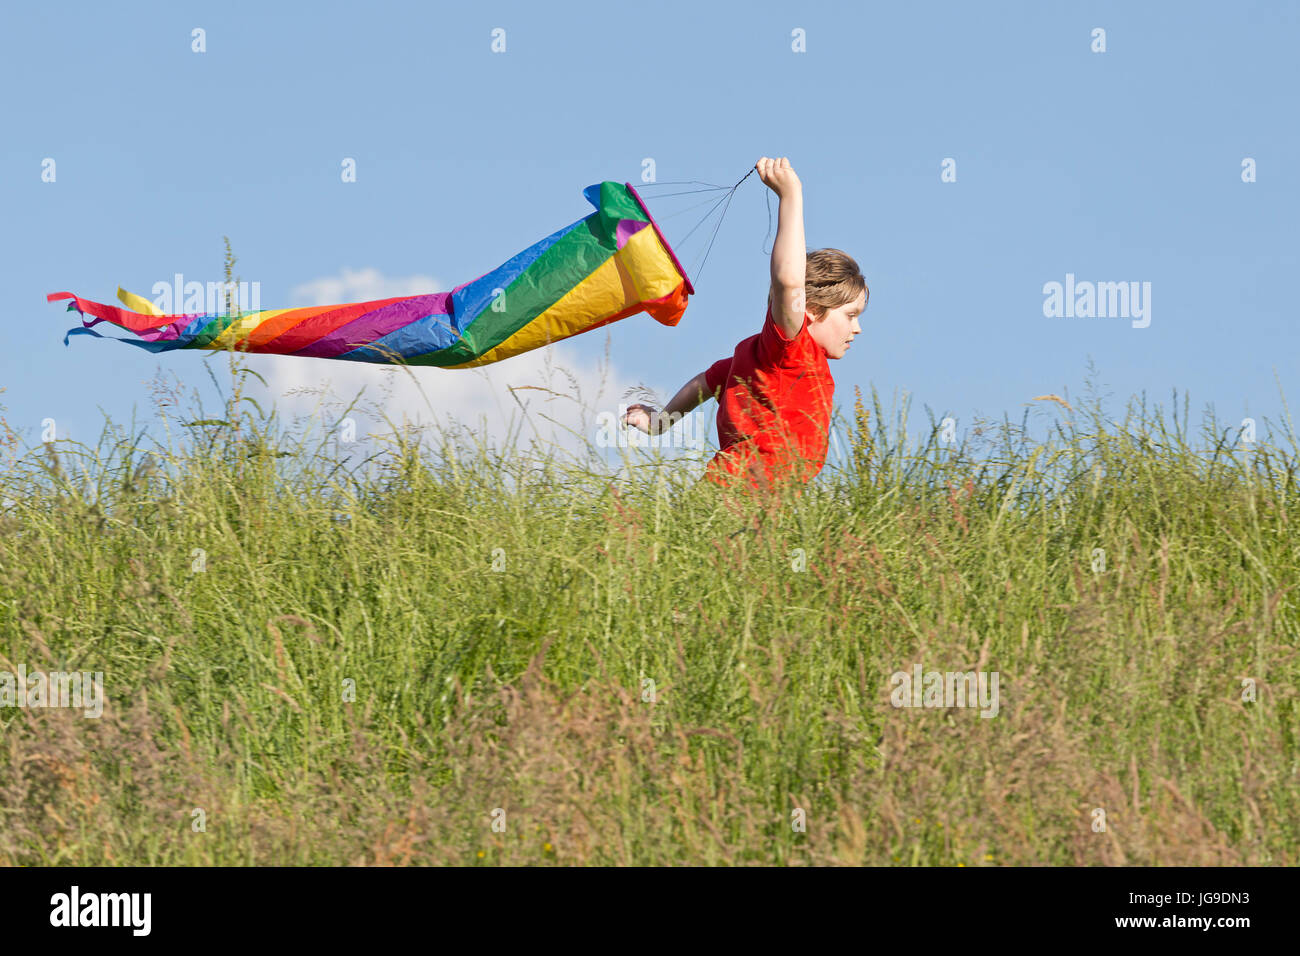 young boy running with wind sleeve, Bleckede, Lower Saxony, Germany - Stock Image